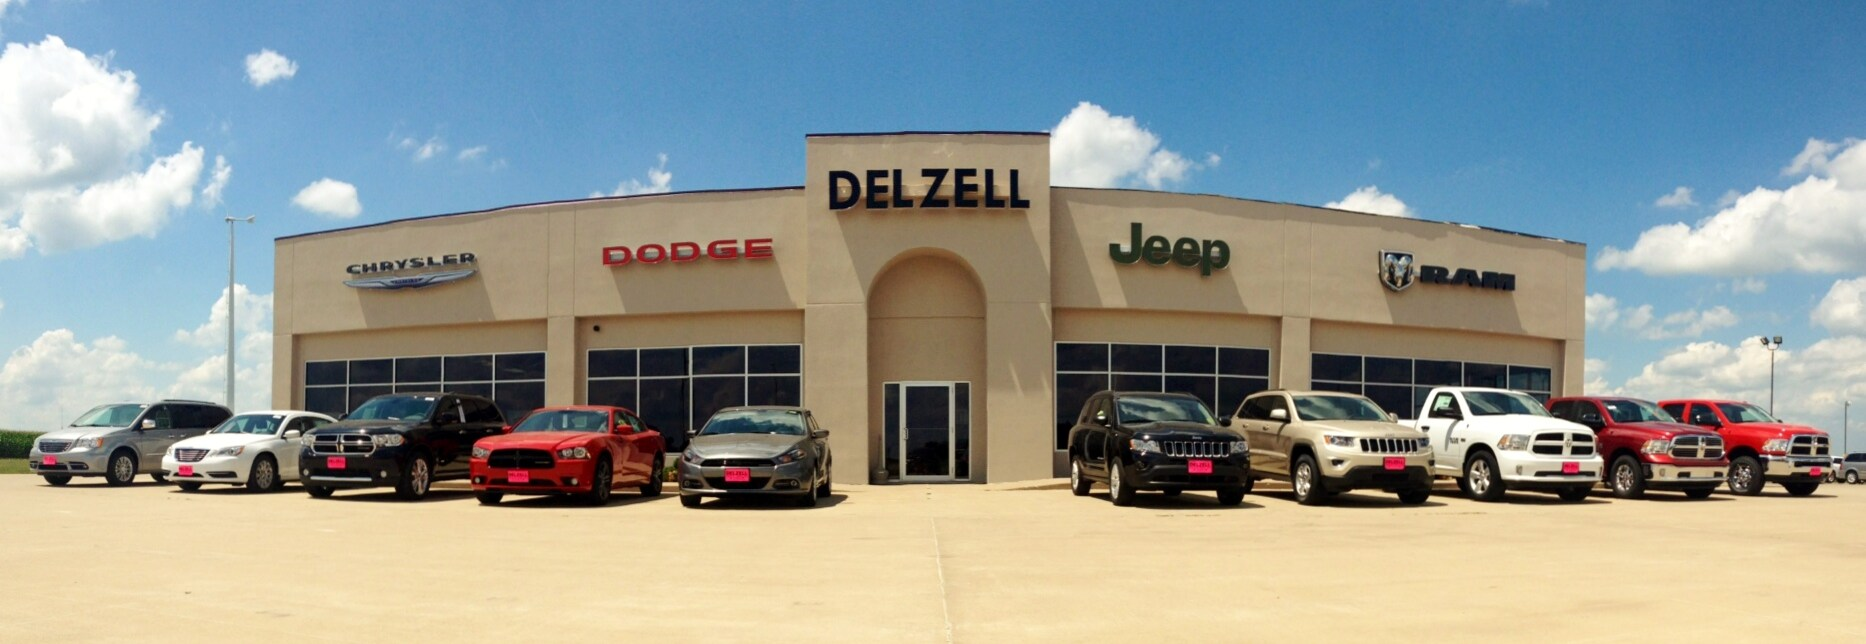 About Our Dealership | Delzell Brothers